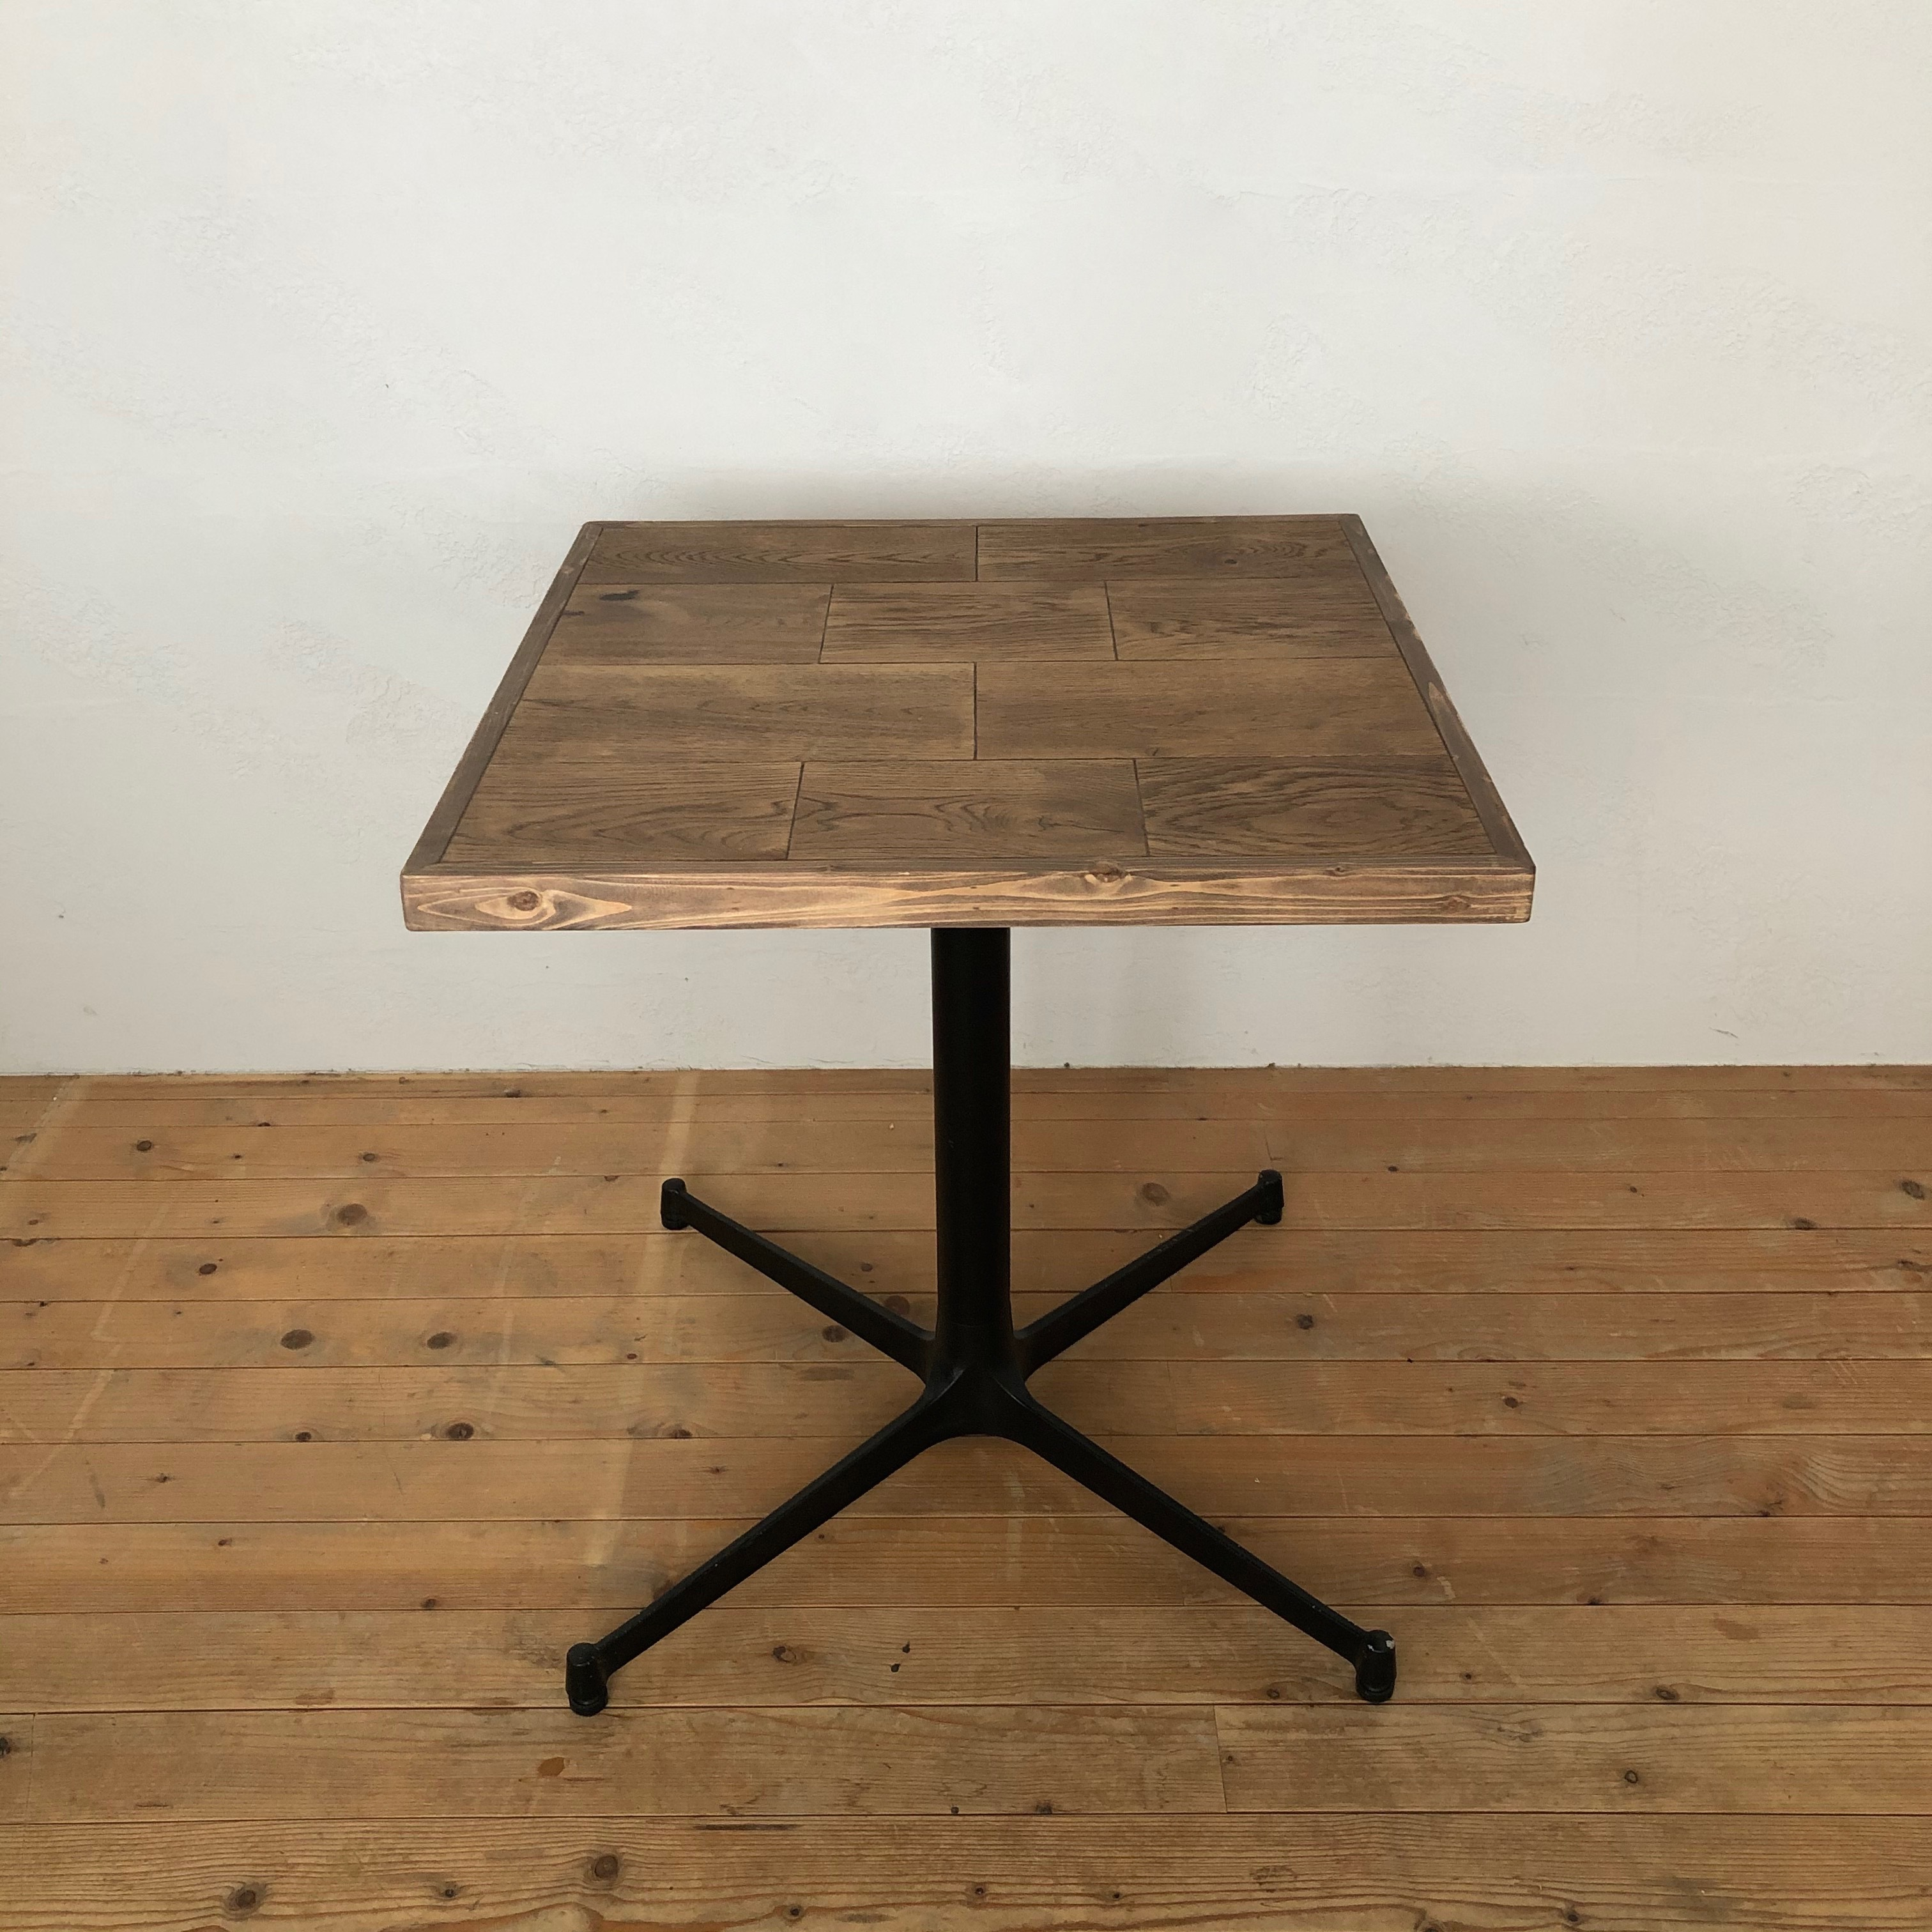 Original CAFE TABLE / OAK